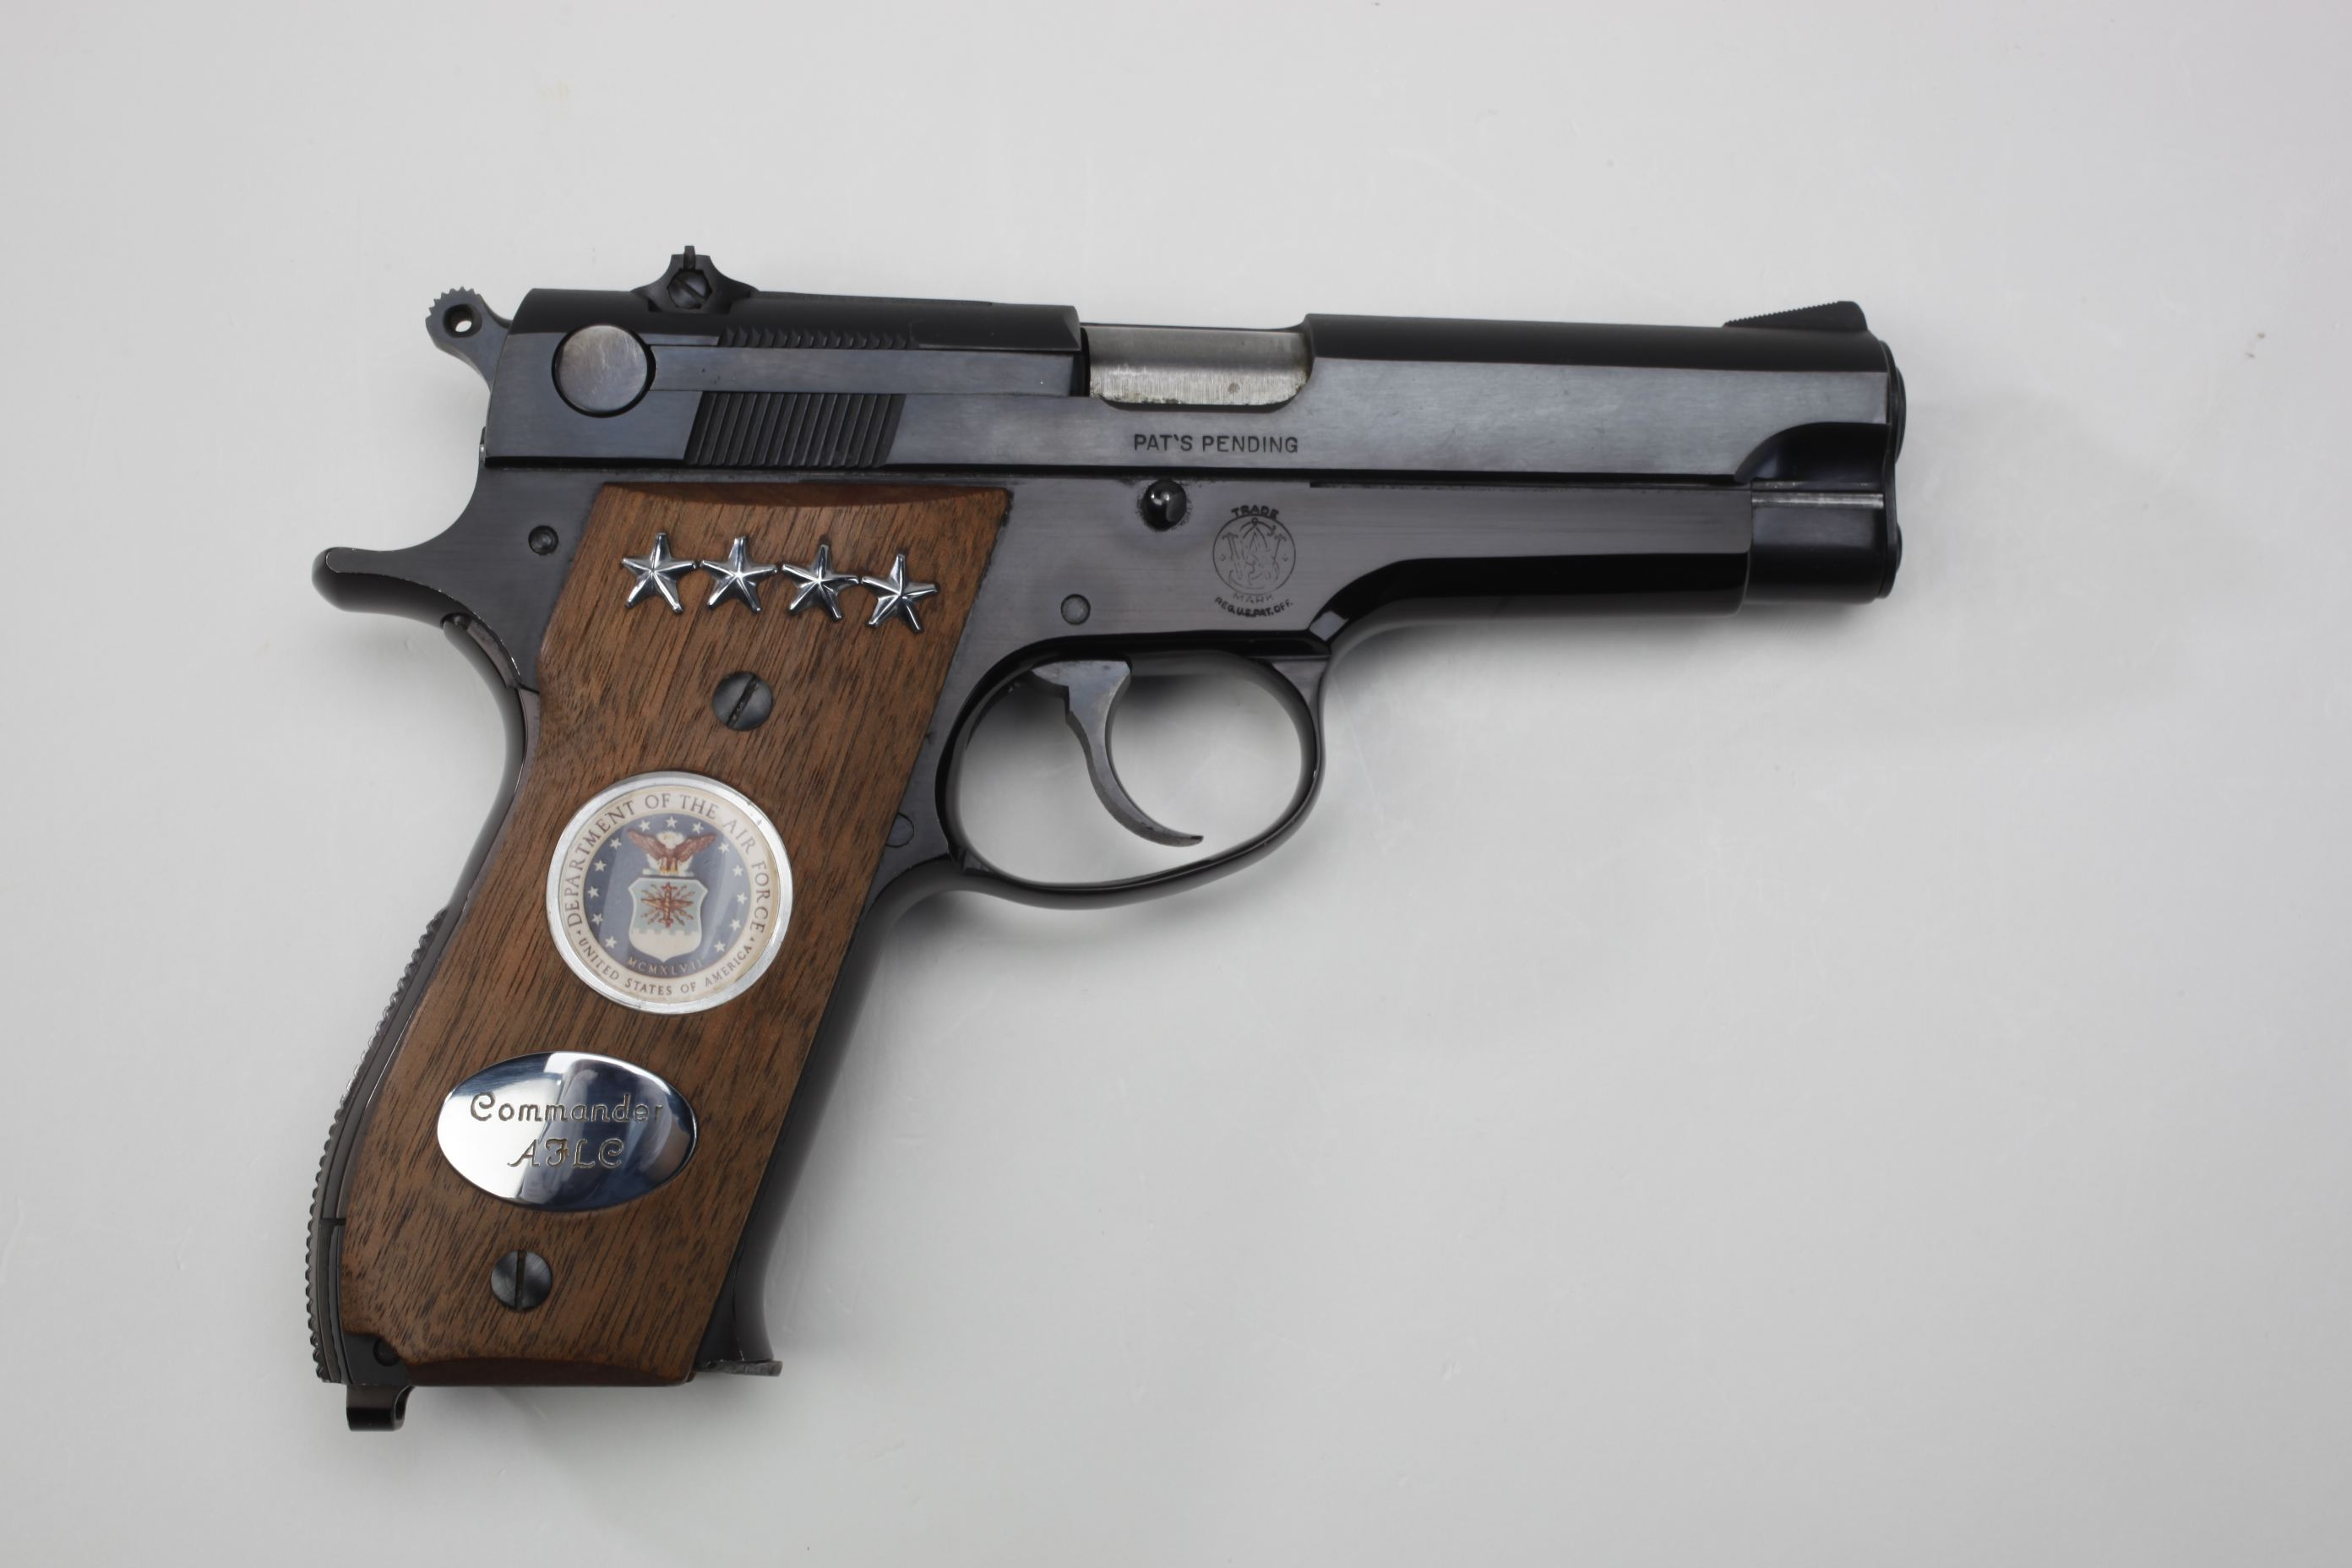 General Poe's Smith & Wesson M39 U.S. Air Force Semi-Automatic General Officer's Pistol